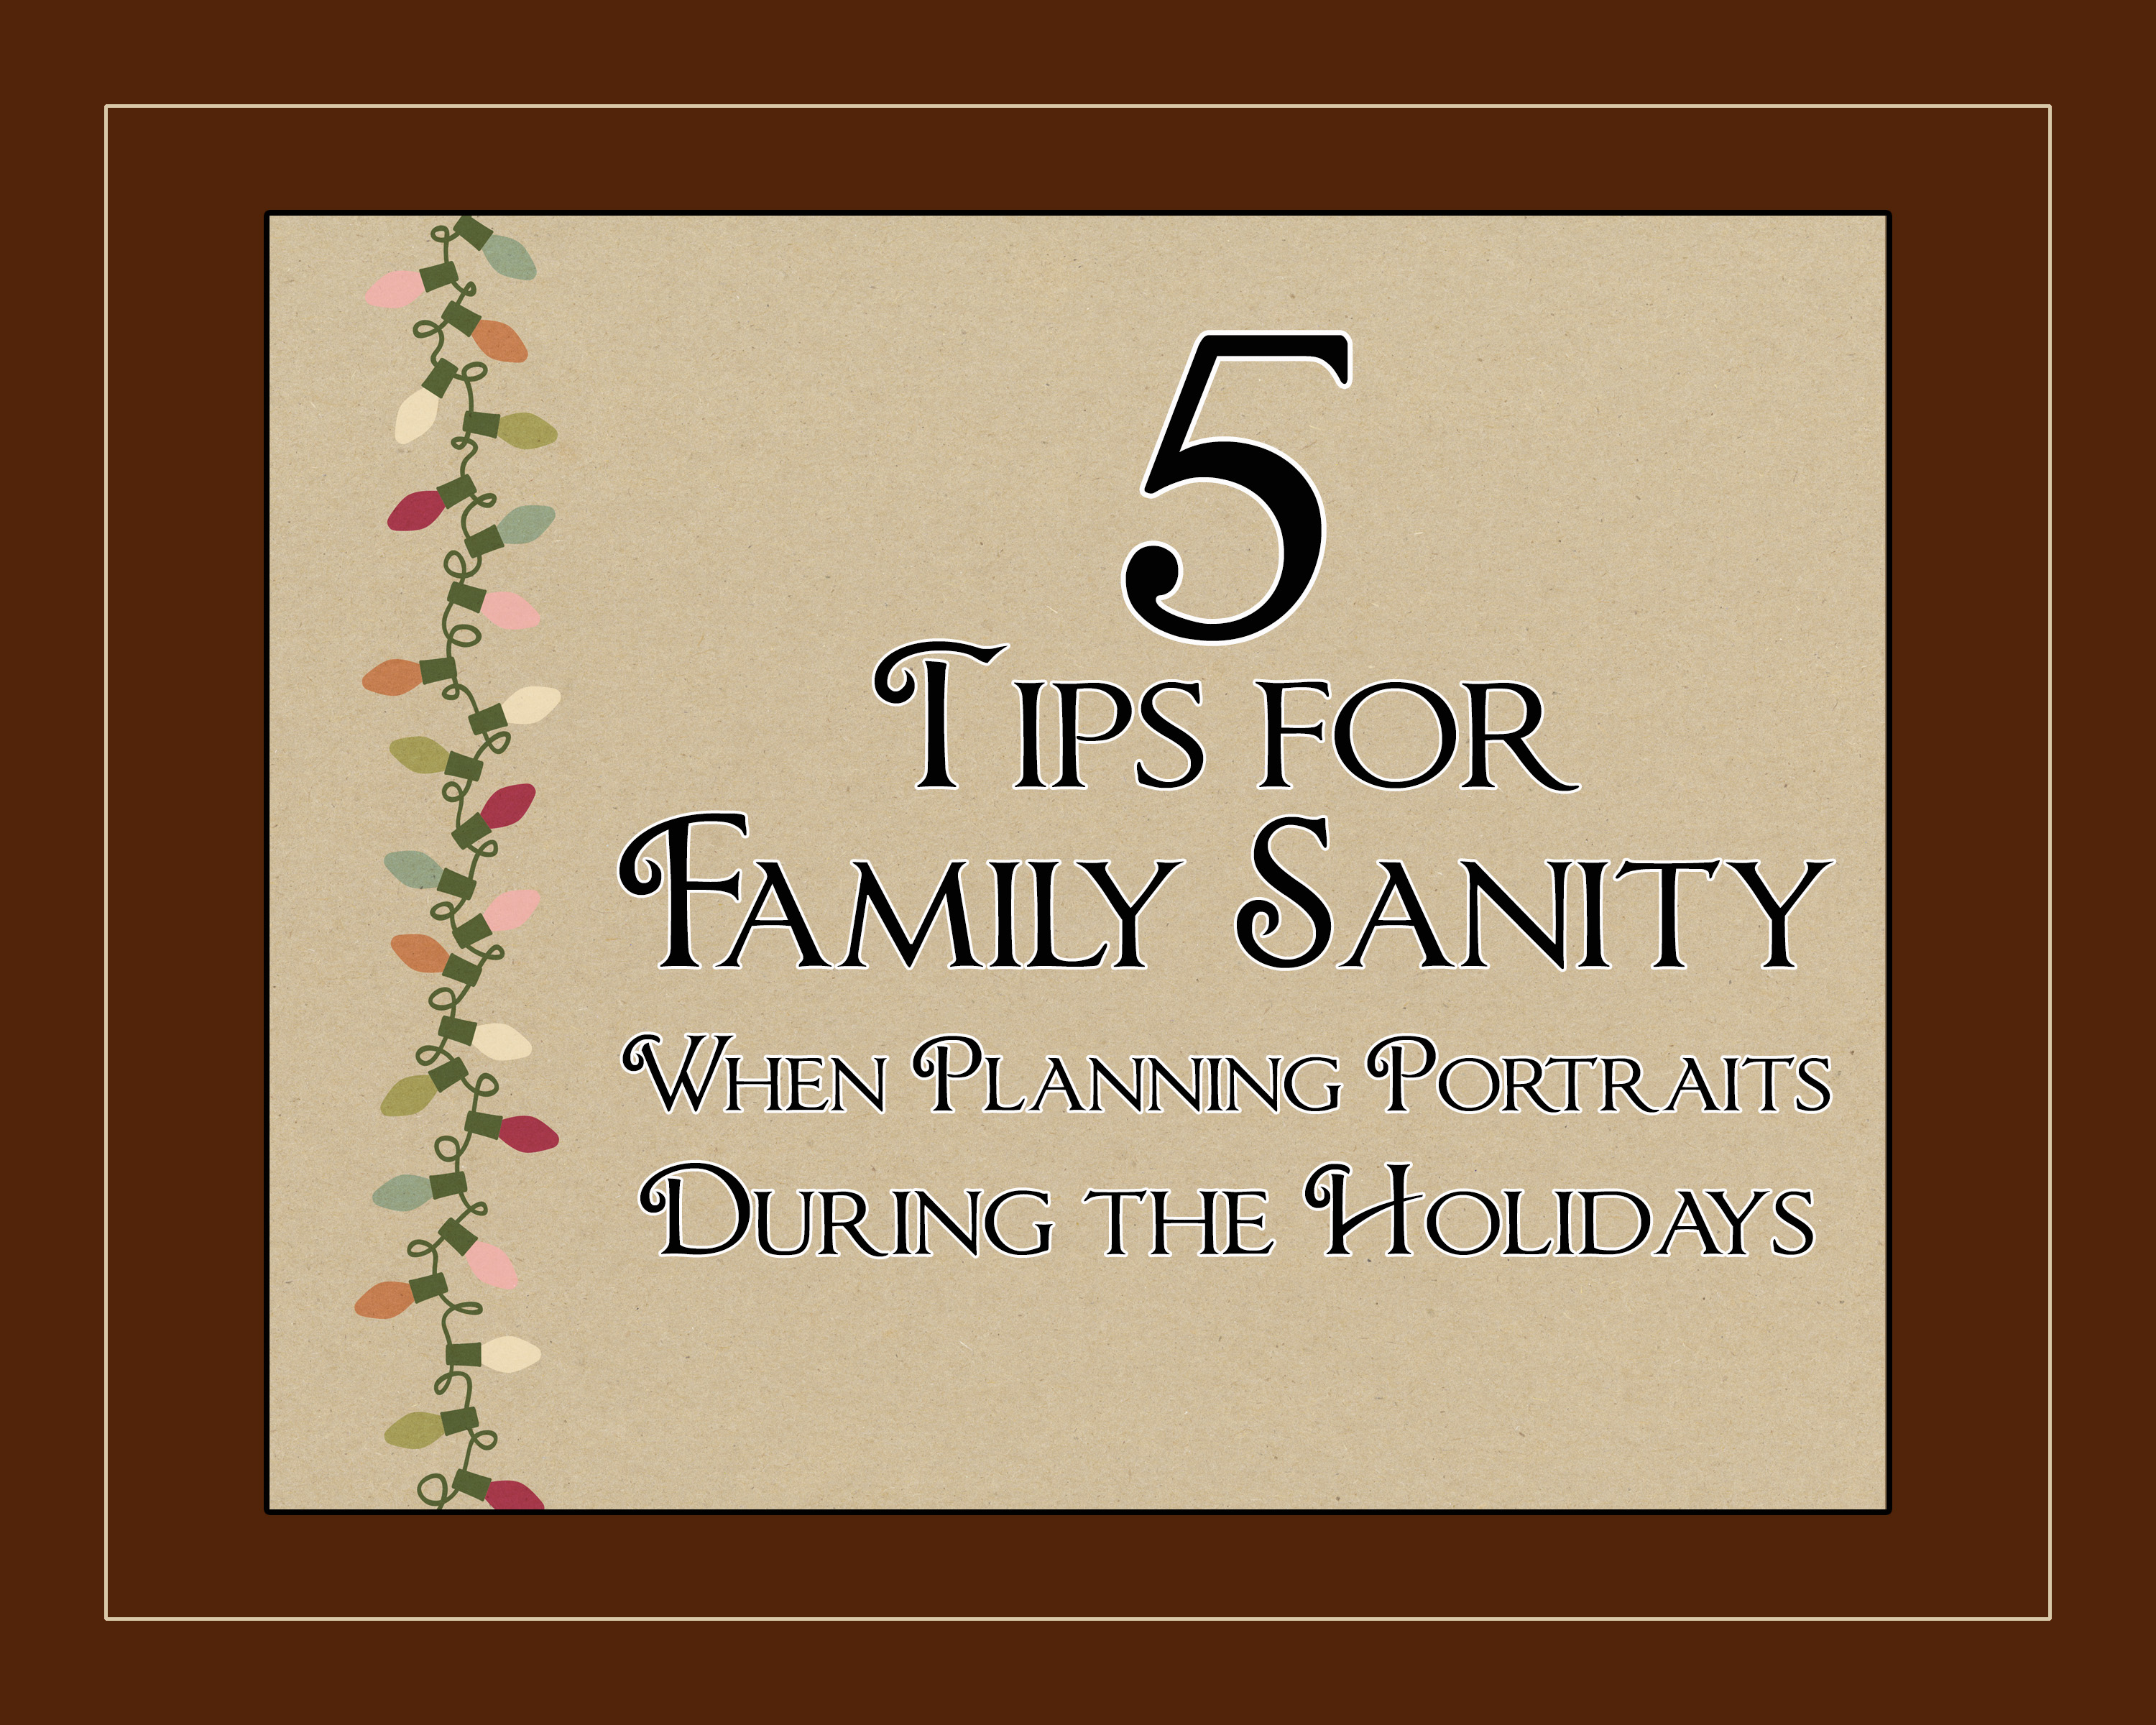 5 Tips for Family Sanity When Planning Portraits During the Holidays